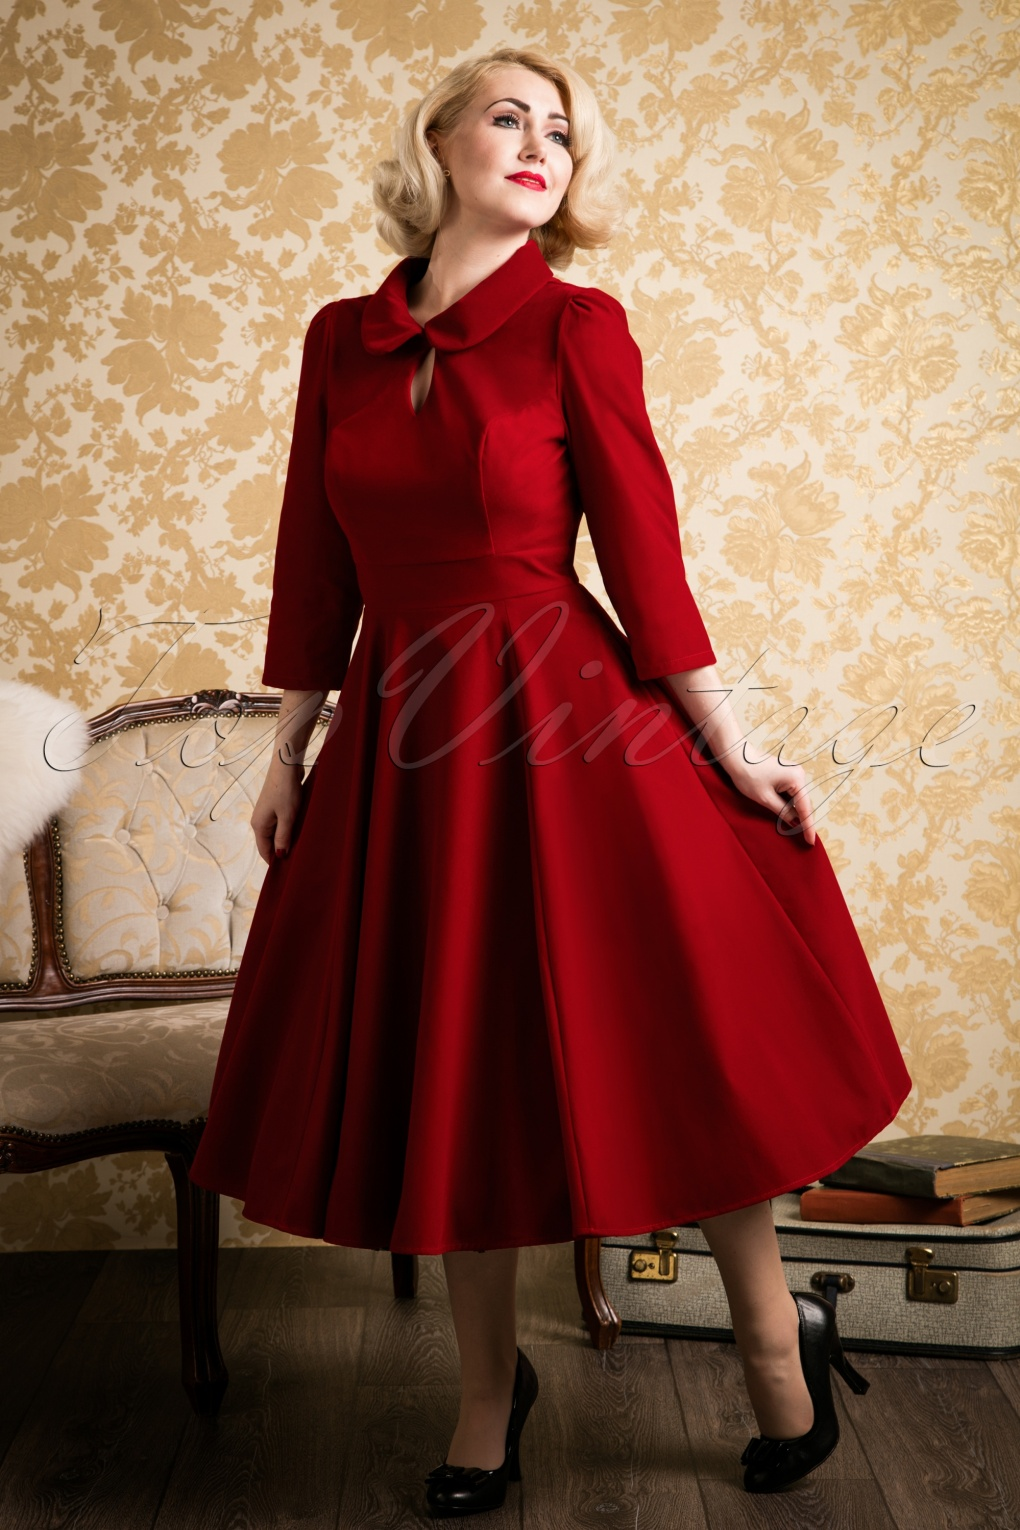 1950s Prom Dresses & Party Dresses 50s Florence Velvet Swing Dress in Burgundy £48.50 AT vintagedancer.com